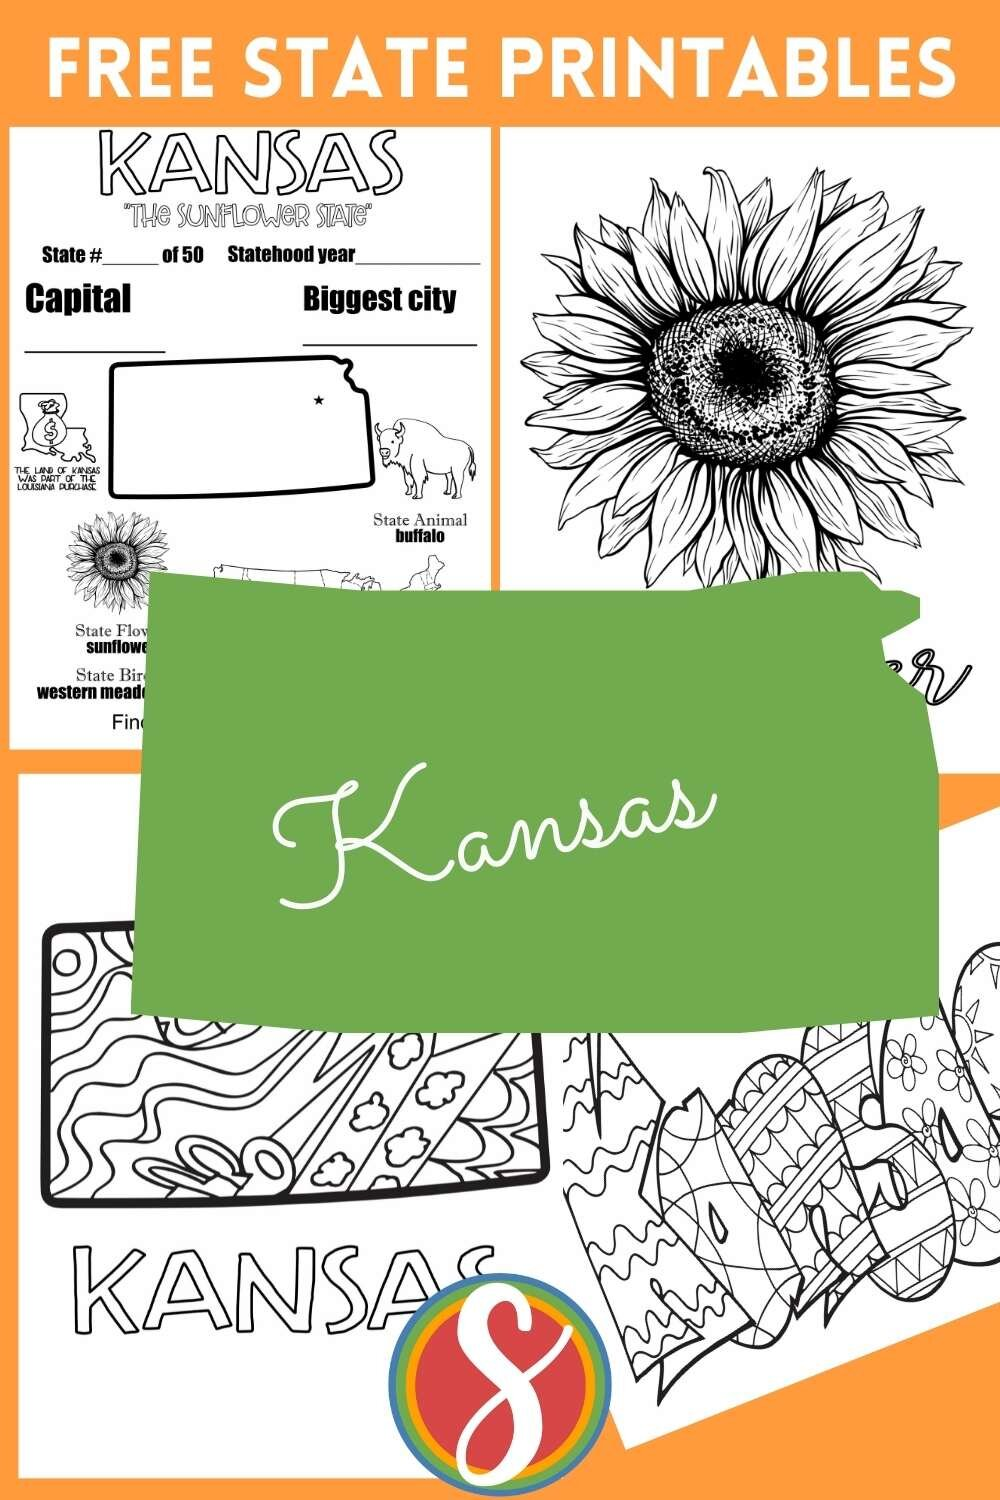 Free U.S. state geography printable activity pages - All 50 states at Stevie Doodles. Find your favorite state, or the one you're visiting, here + browse more free educational coloring pages